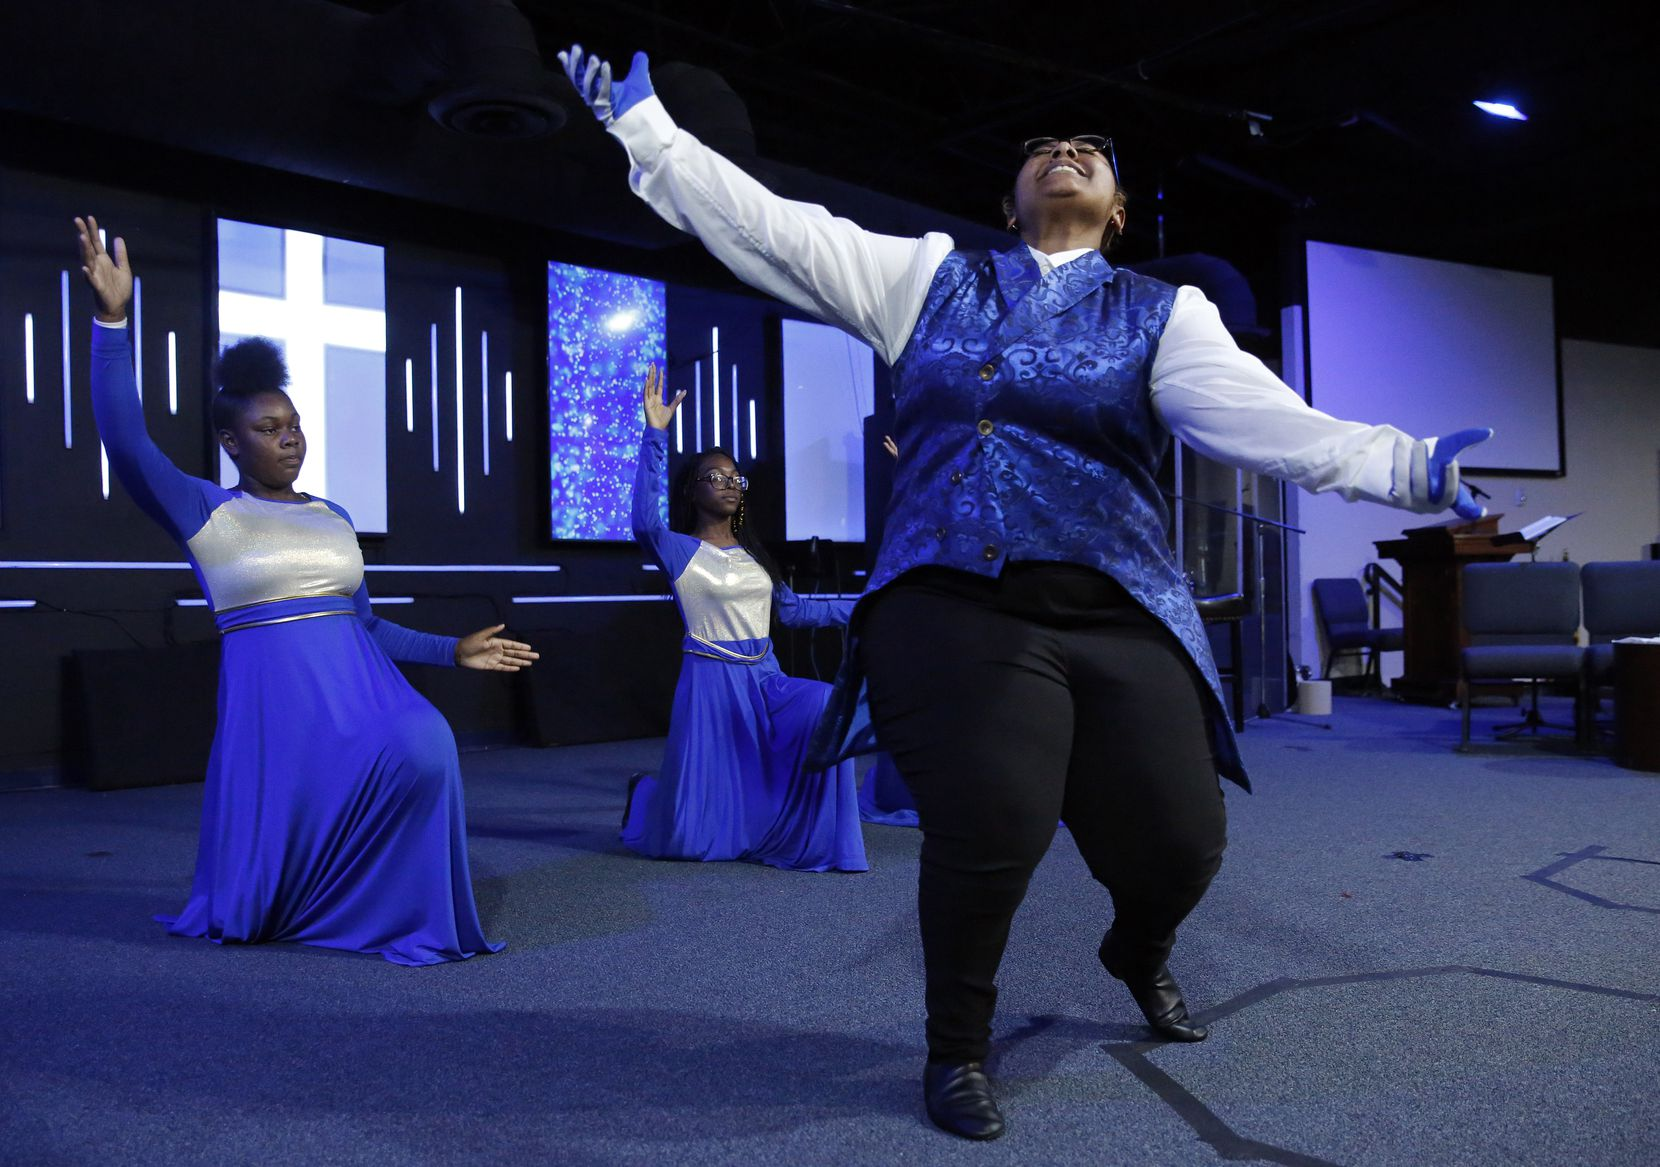 """Daisy Herron (right), among the members of The Restored dance ministry, runs through a rehearsal with Ashleigh Pruitt Turner (left) and Jai'lah Yarbrough. They taped their """"Glory to the Lord"""" performance for the Sunday worship service."""